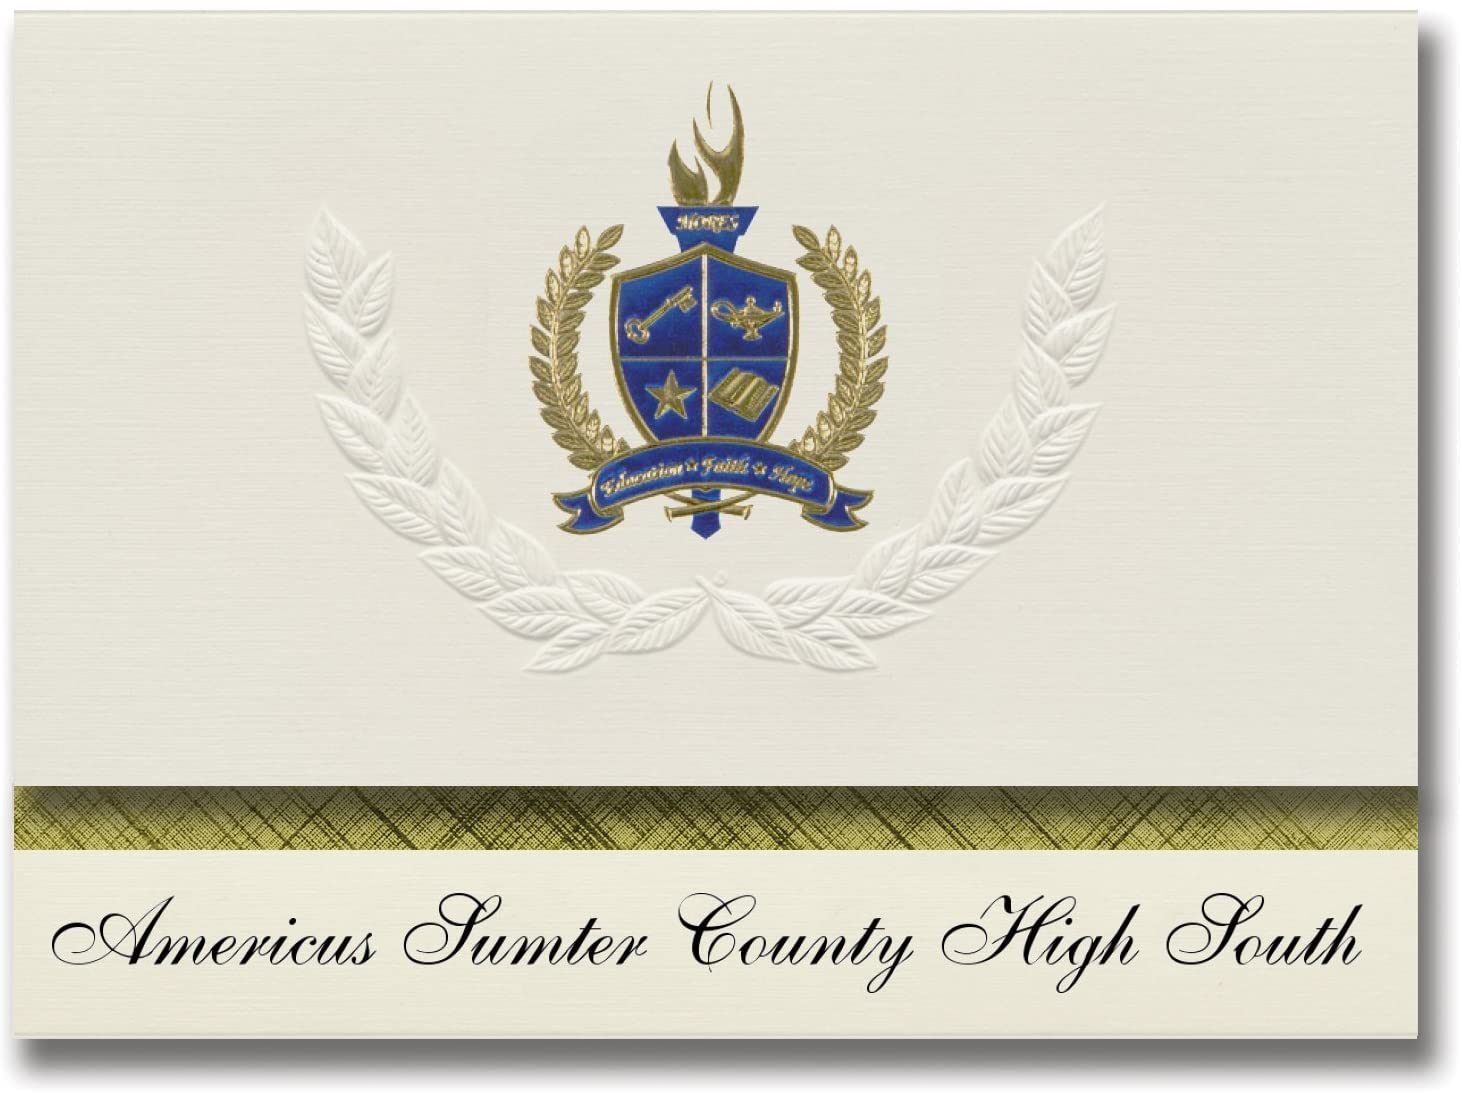 Signature Announcements Americus Sumter County High South (Americus, GA) Graduation Announcements, Presidential Basic Pack 25 with Gold & Blue Metallic Foil seal